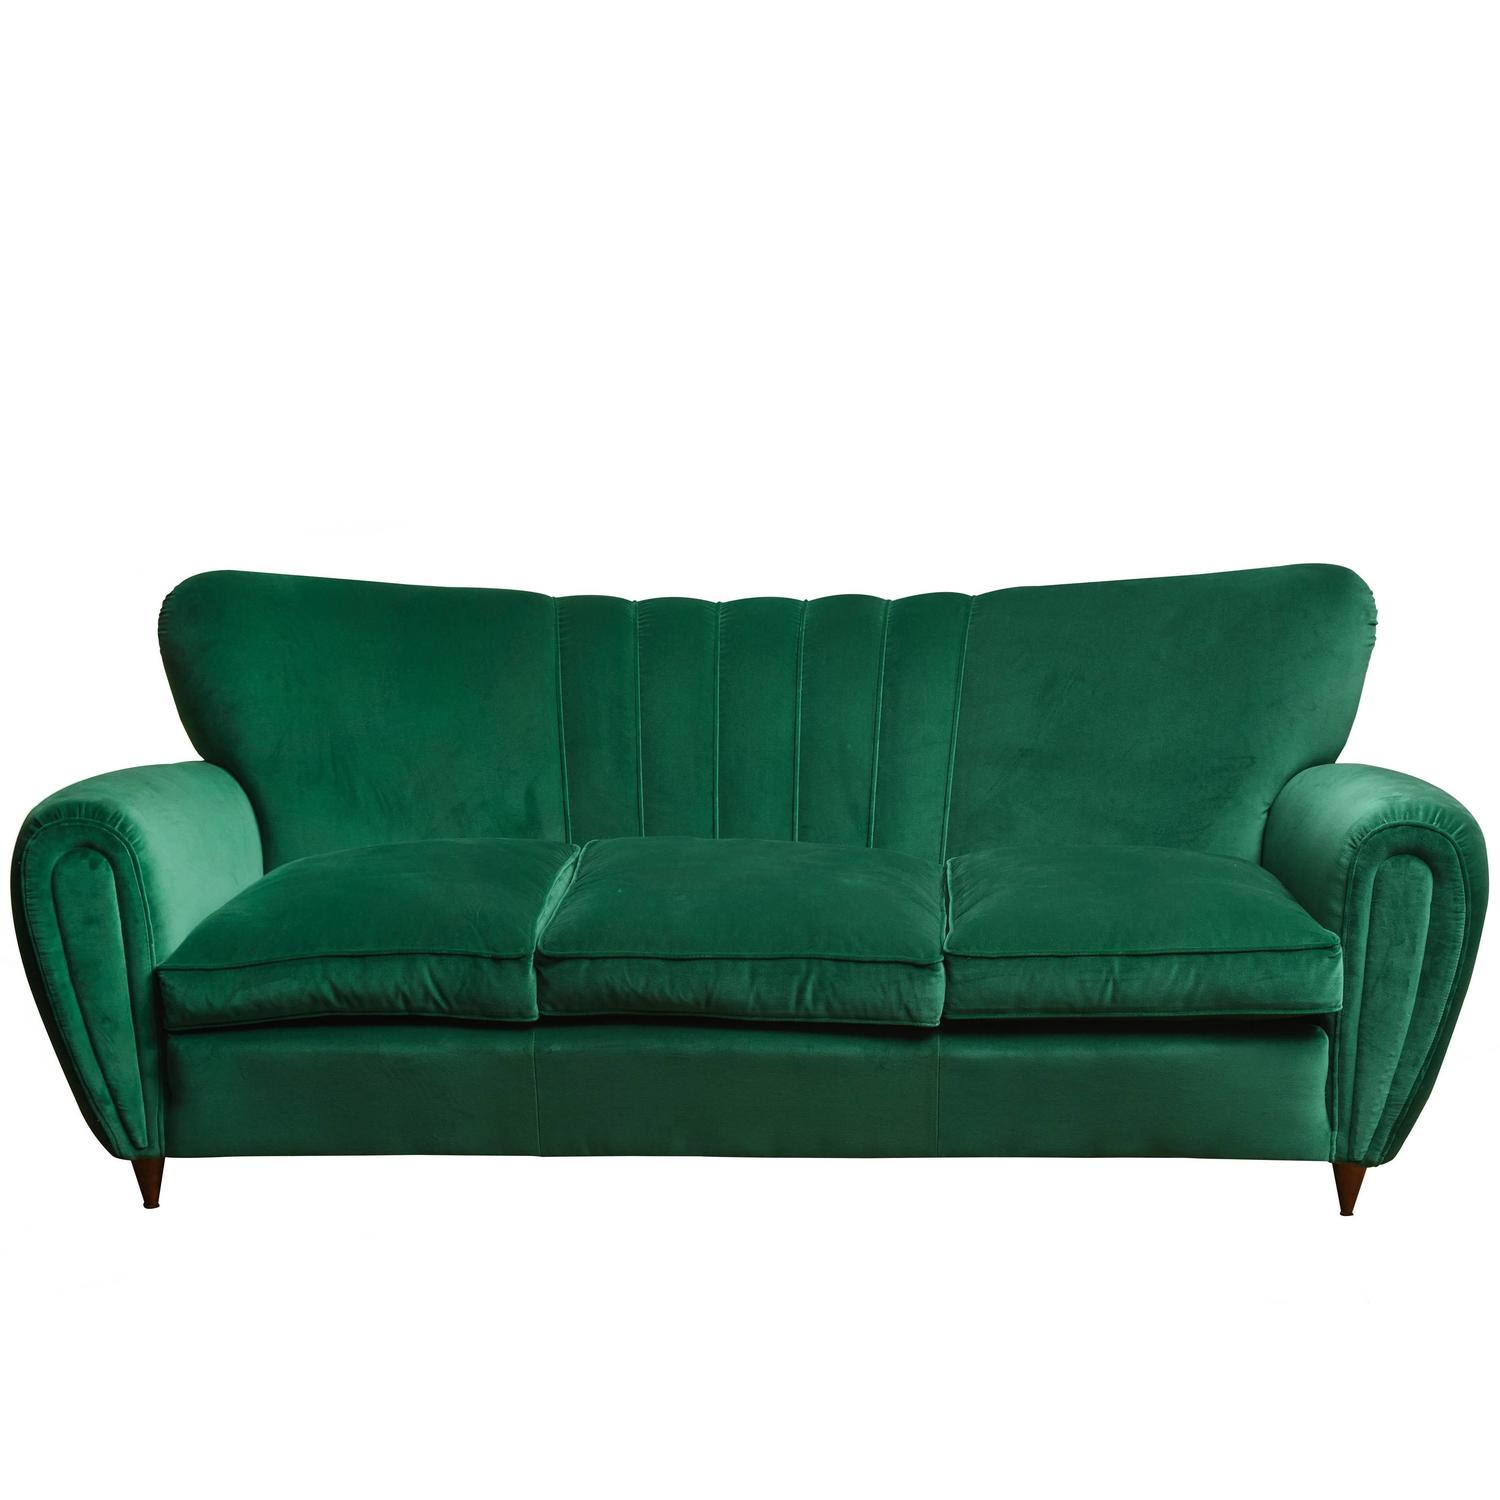 Art Deco Sofa At 1stdibs